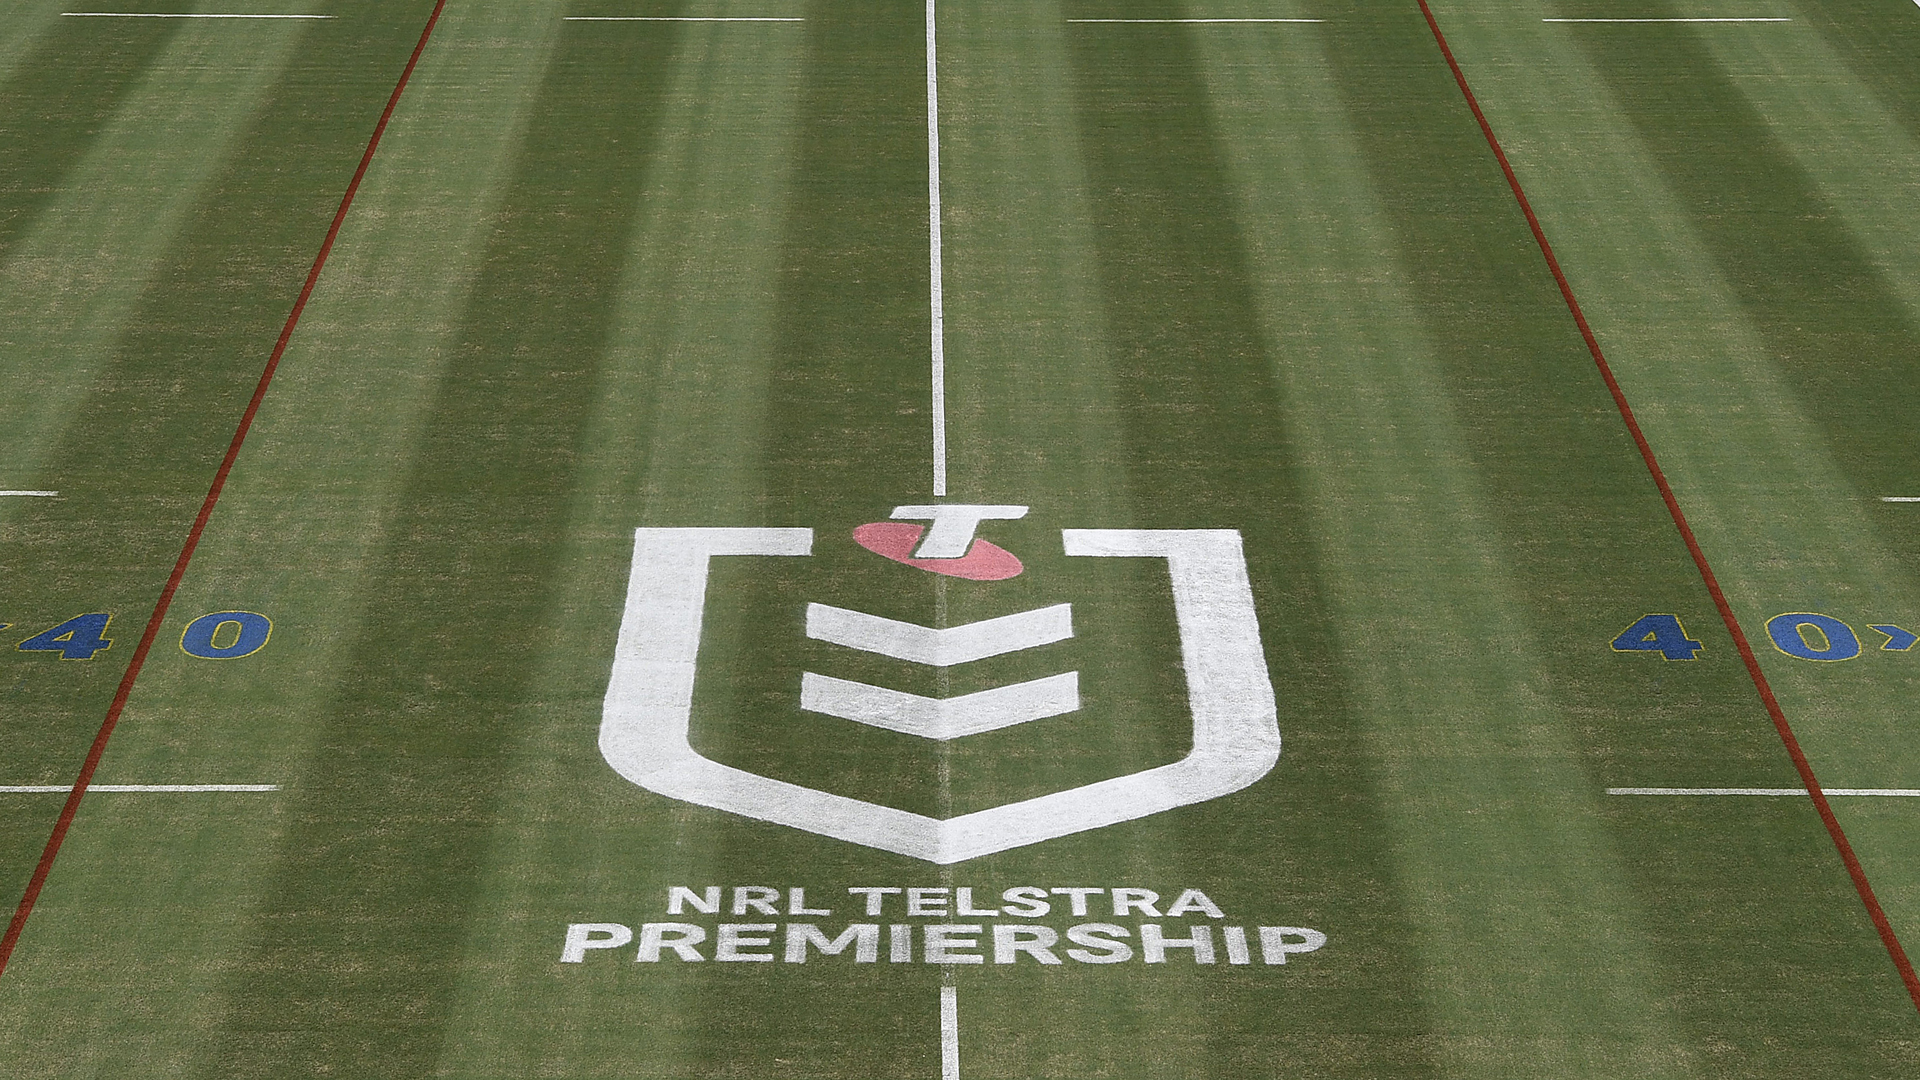 The NRL announced a recovery plan with clubs relating to the impact of coronavirus on the 2020 season.